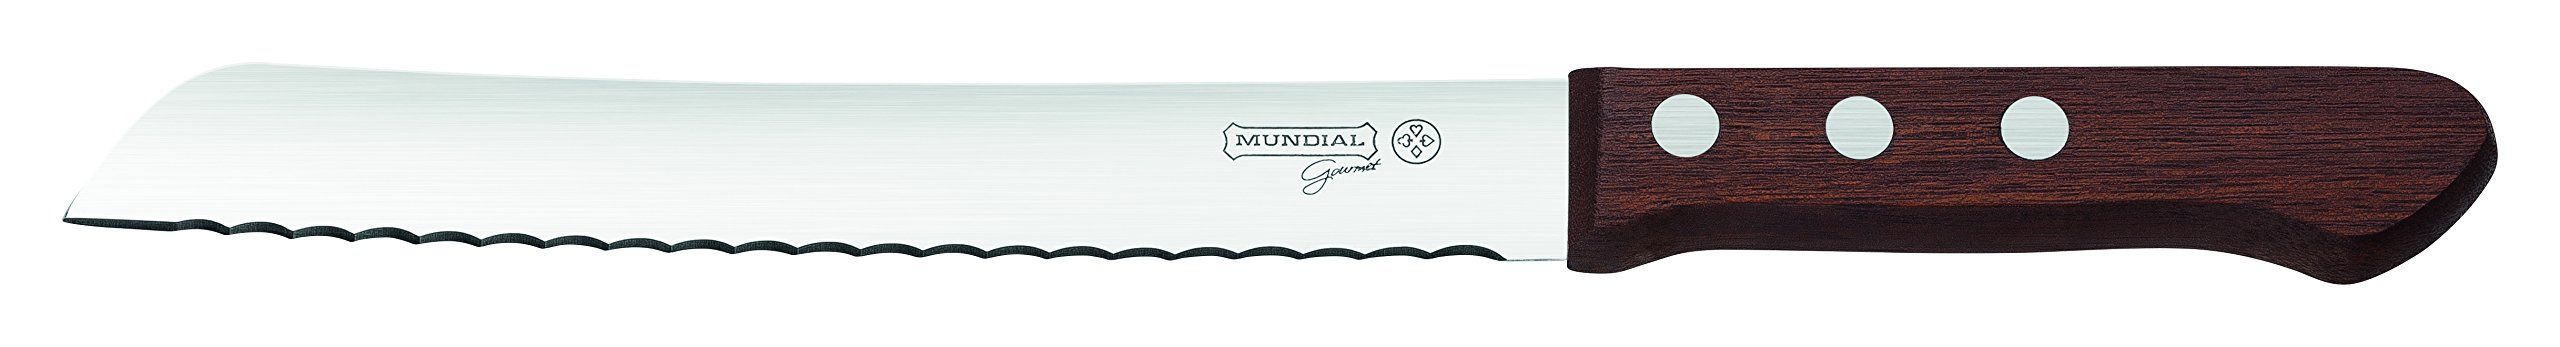 Mundial 1121-8M Premium Wood 8 in Bread Slicer Knife Serrated Stainless Steel with Wood Handle 1 Bread Knife blade has an ultra-sharp serrated edge that grips & quickly cuts without tearing Multi-purpose knife is deal for slicing cake, crusty bread, bagels, pastries, pineapple & tomatoes Wood handle: hand wash only and dry before storing